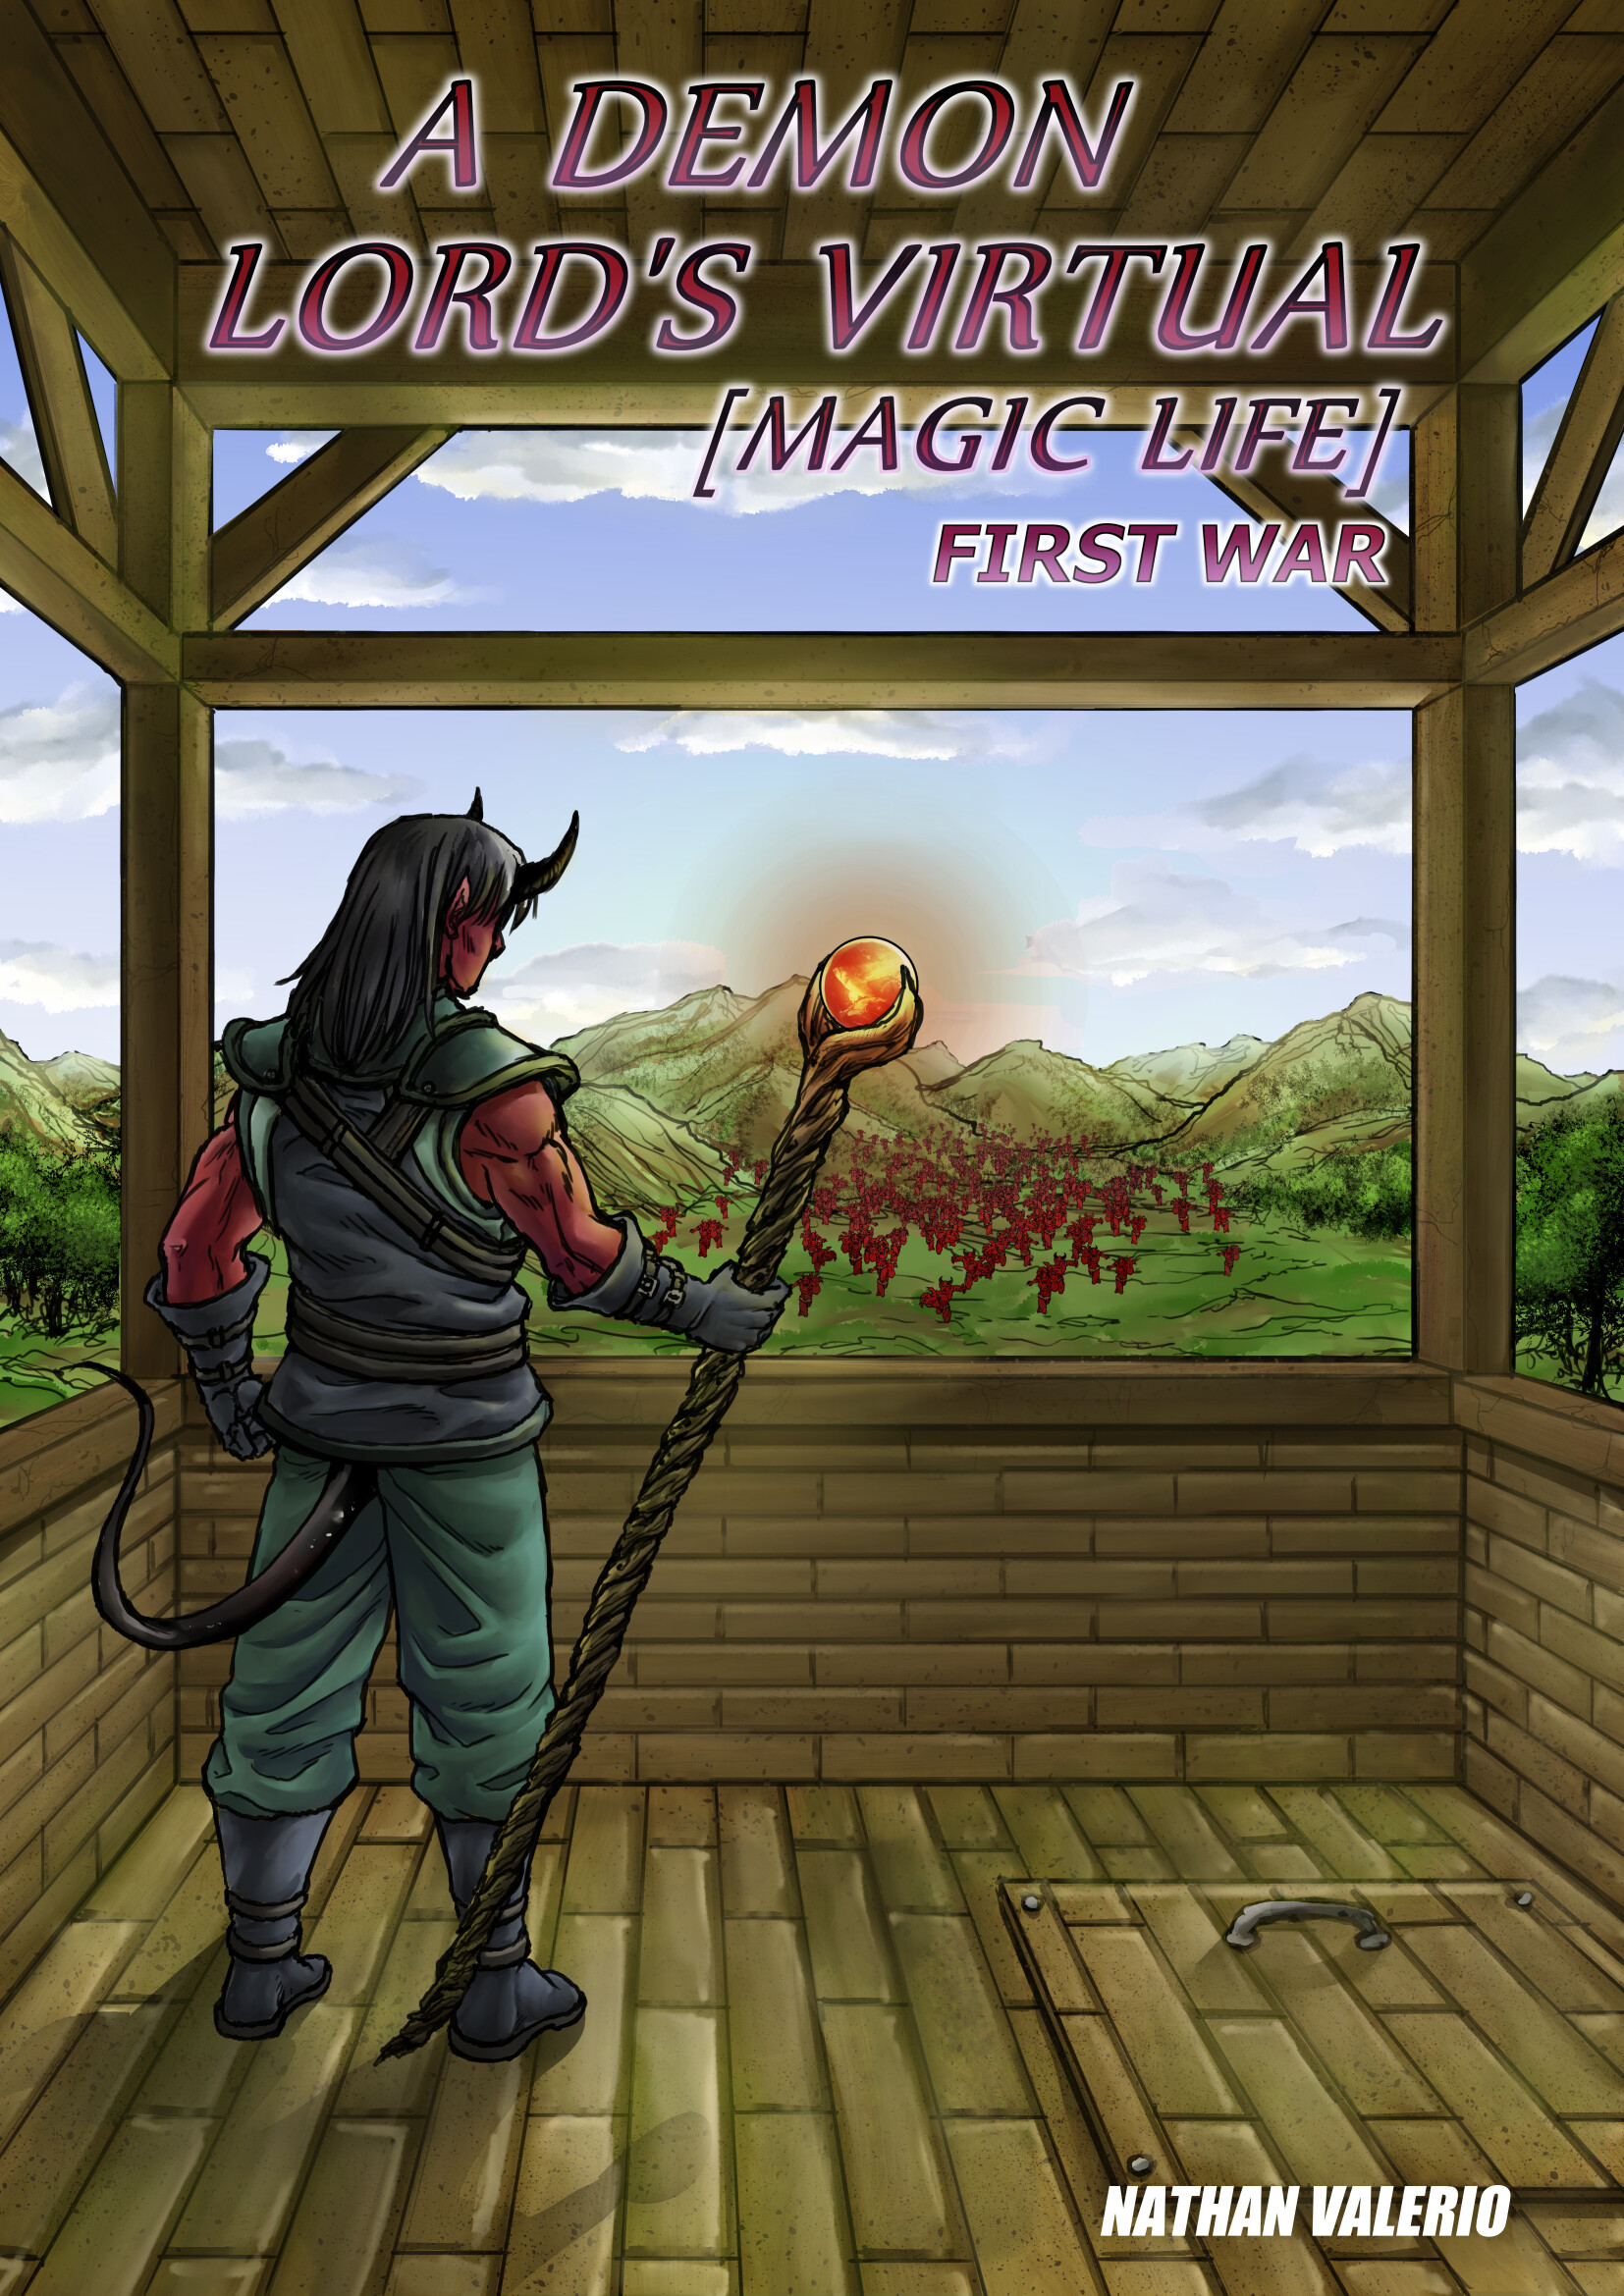 Gustavo melo cover demon s lord virtual magic life first war low